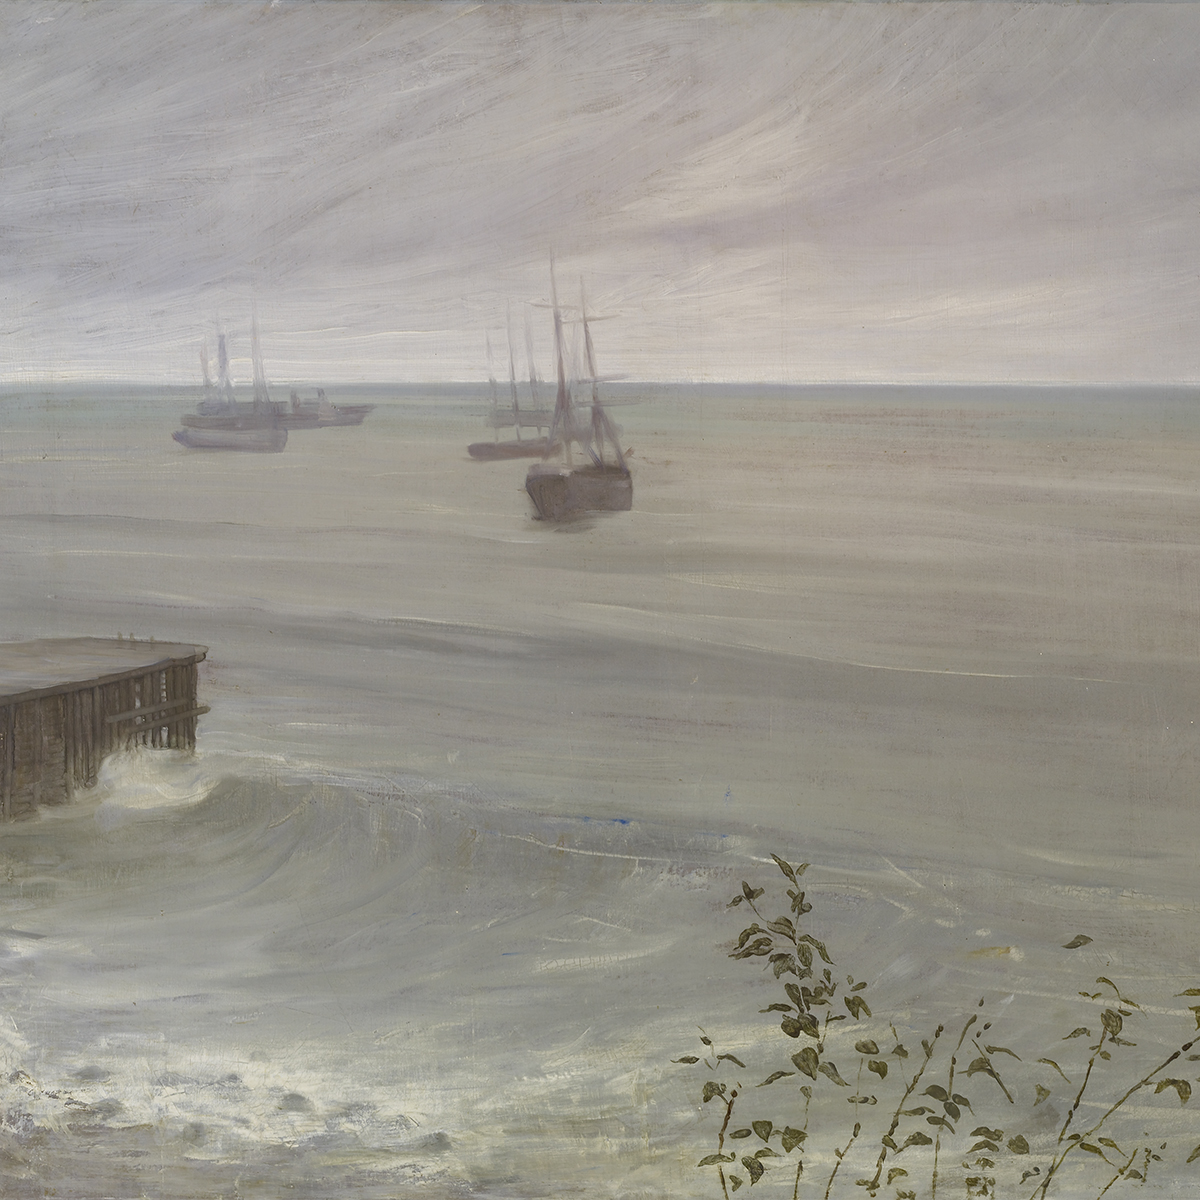 Oil painting of ocean with boats